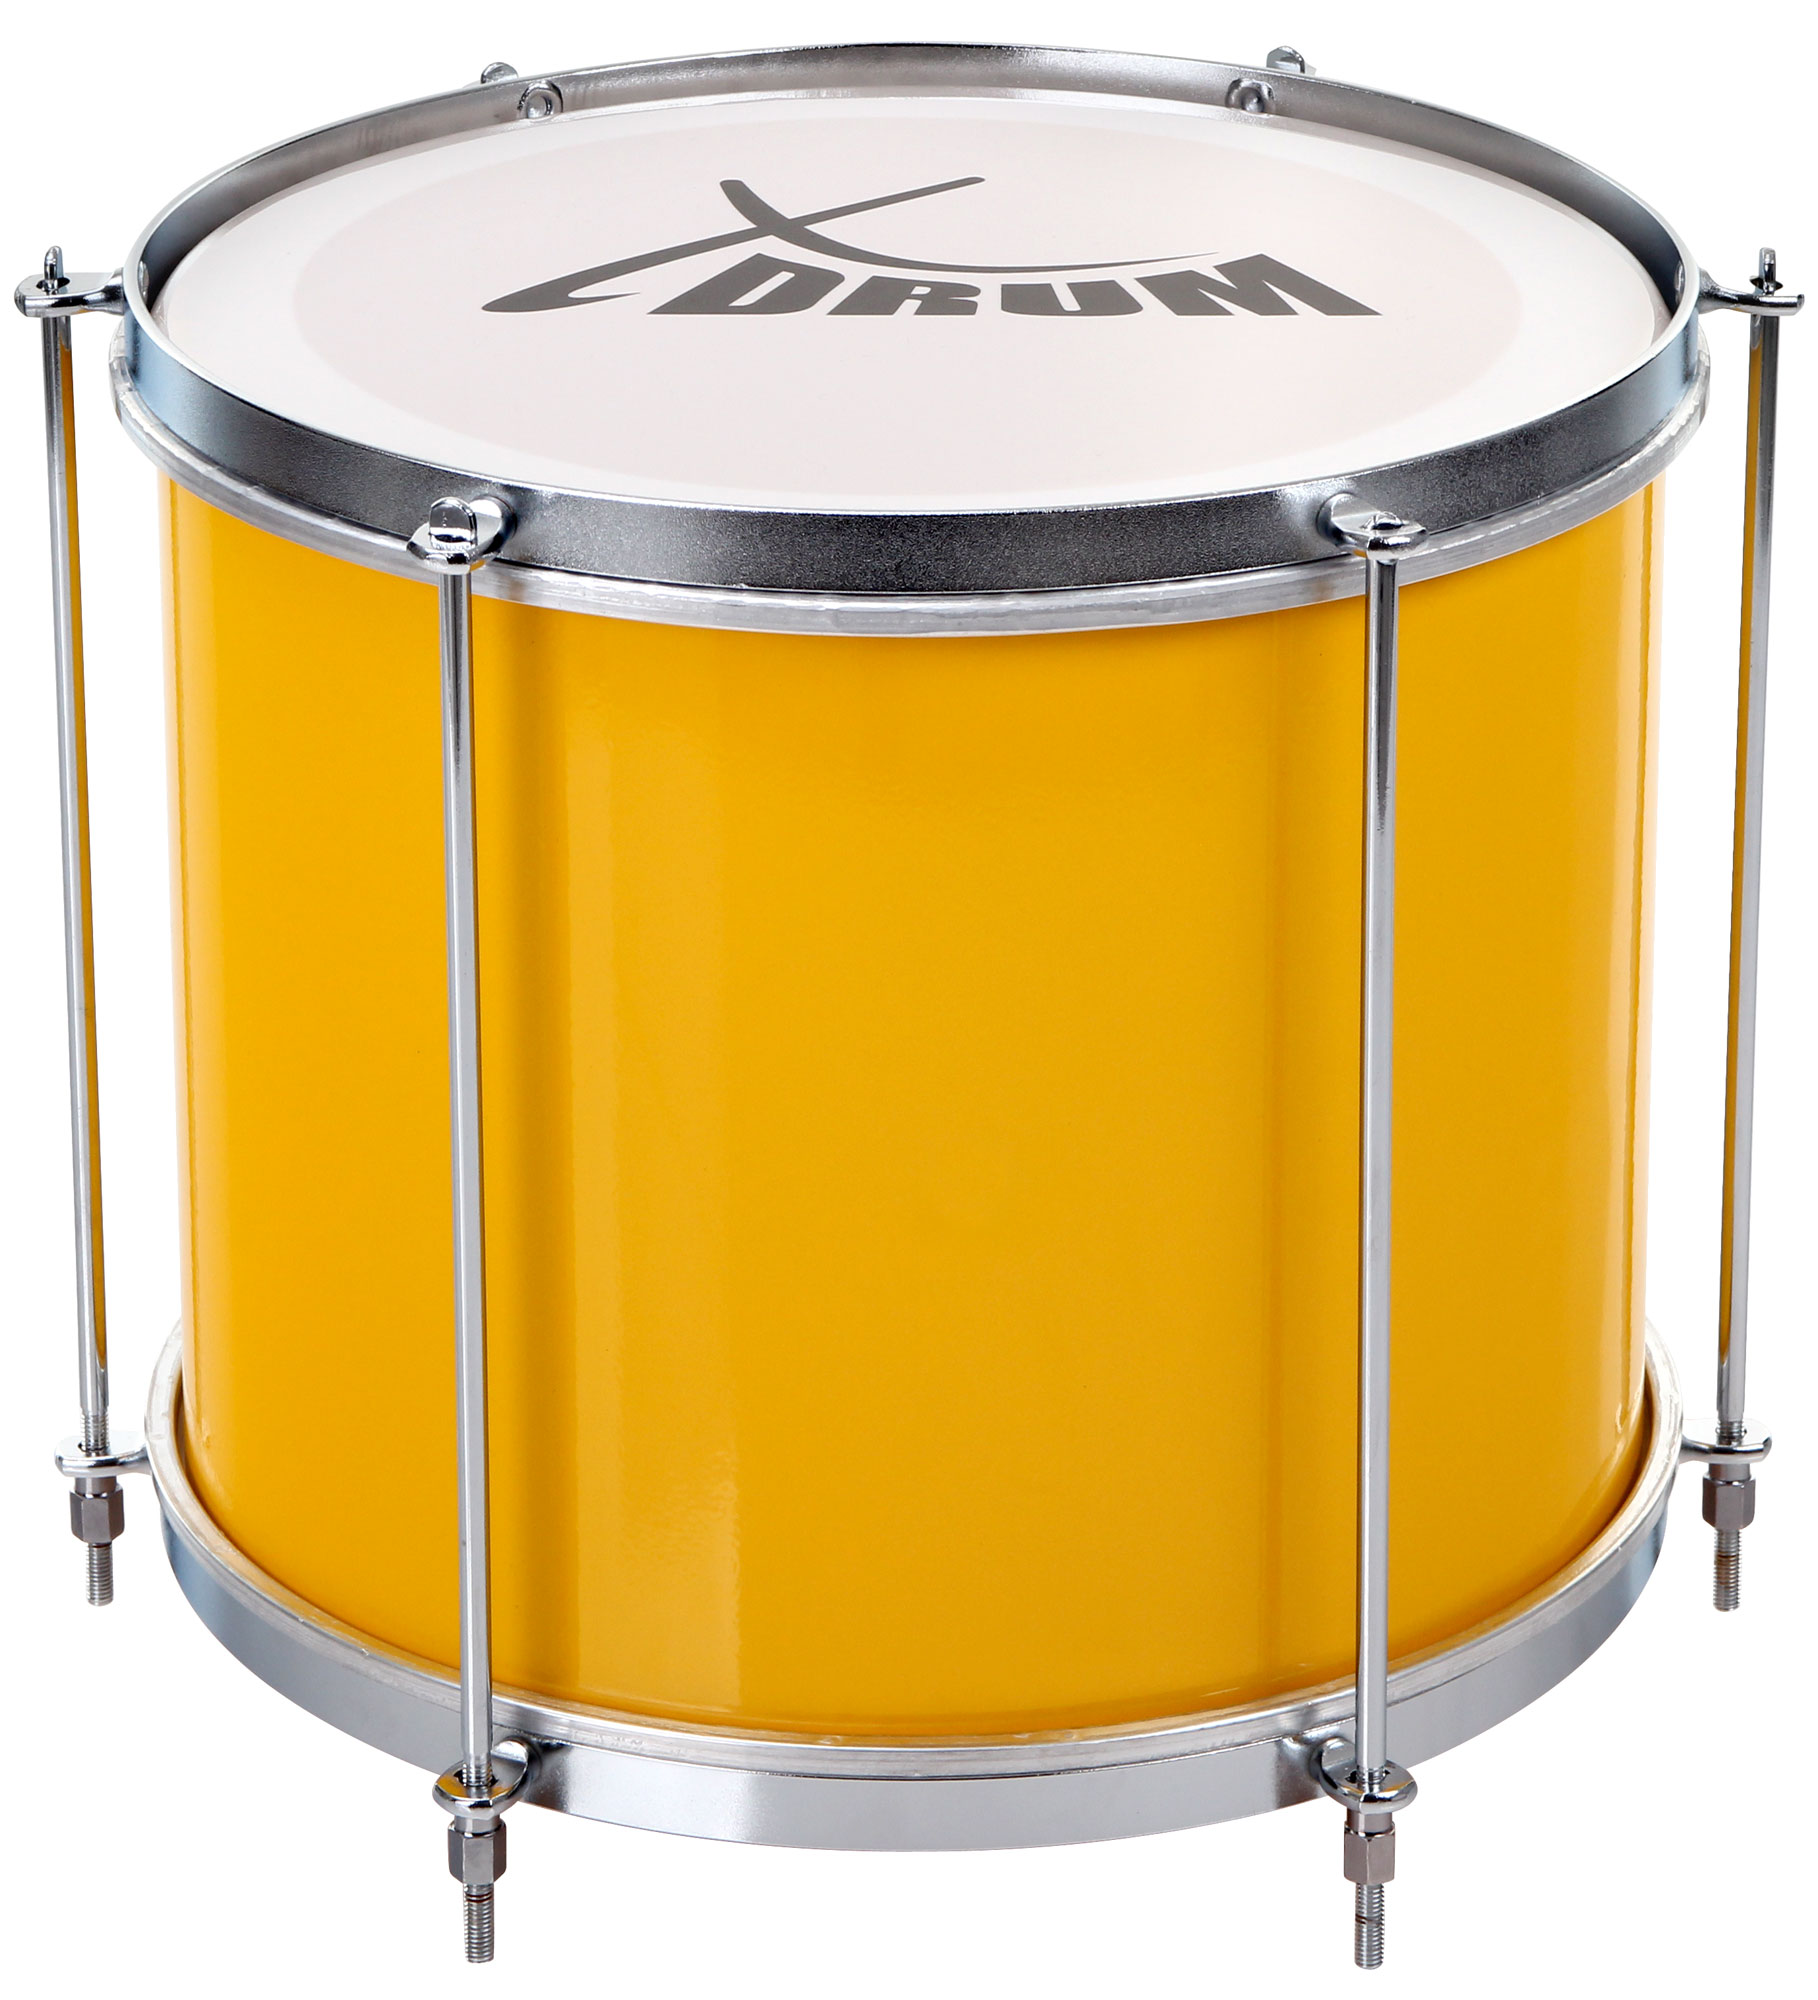 XDrum SSD 1210 Repinique Samba Trommel